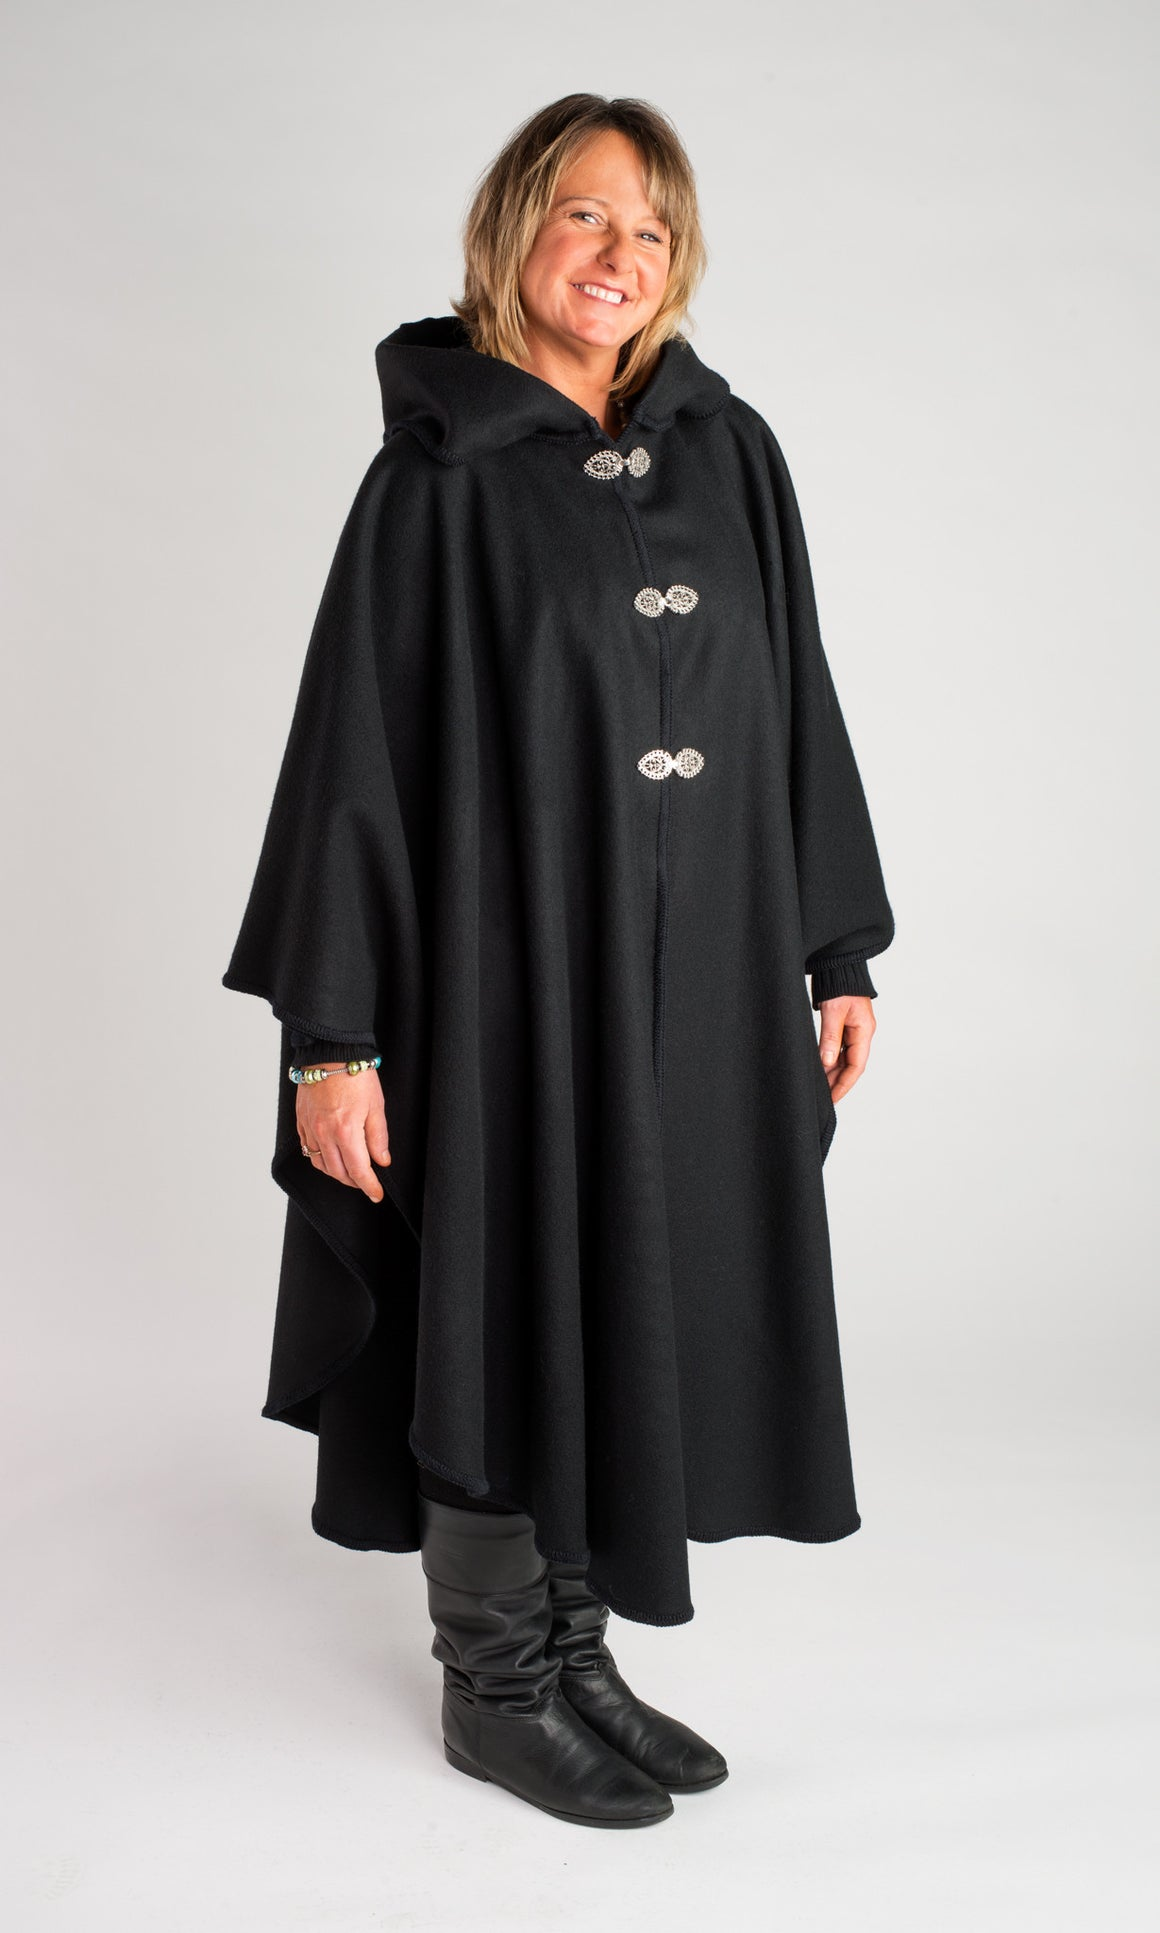 Casco Bay Merino Wool Cape - Midnight Black